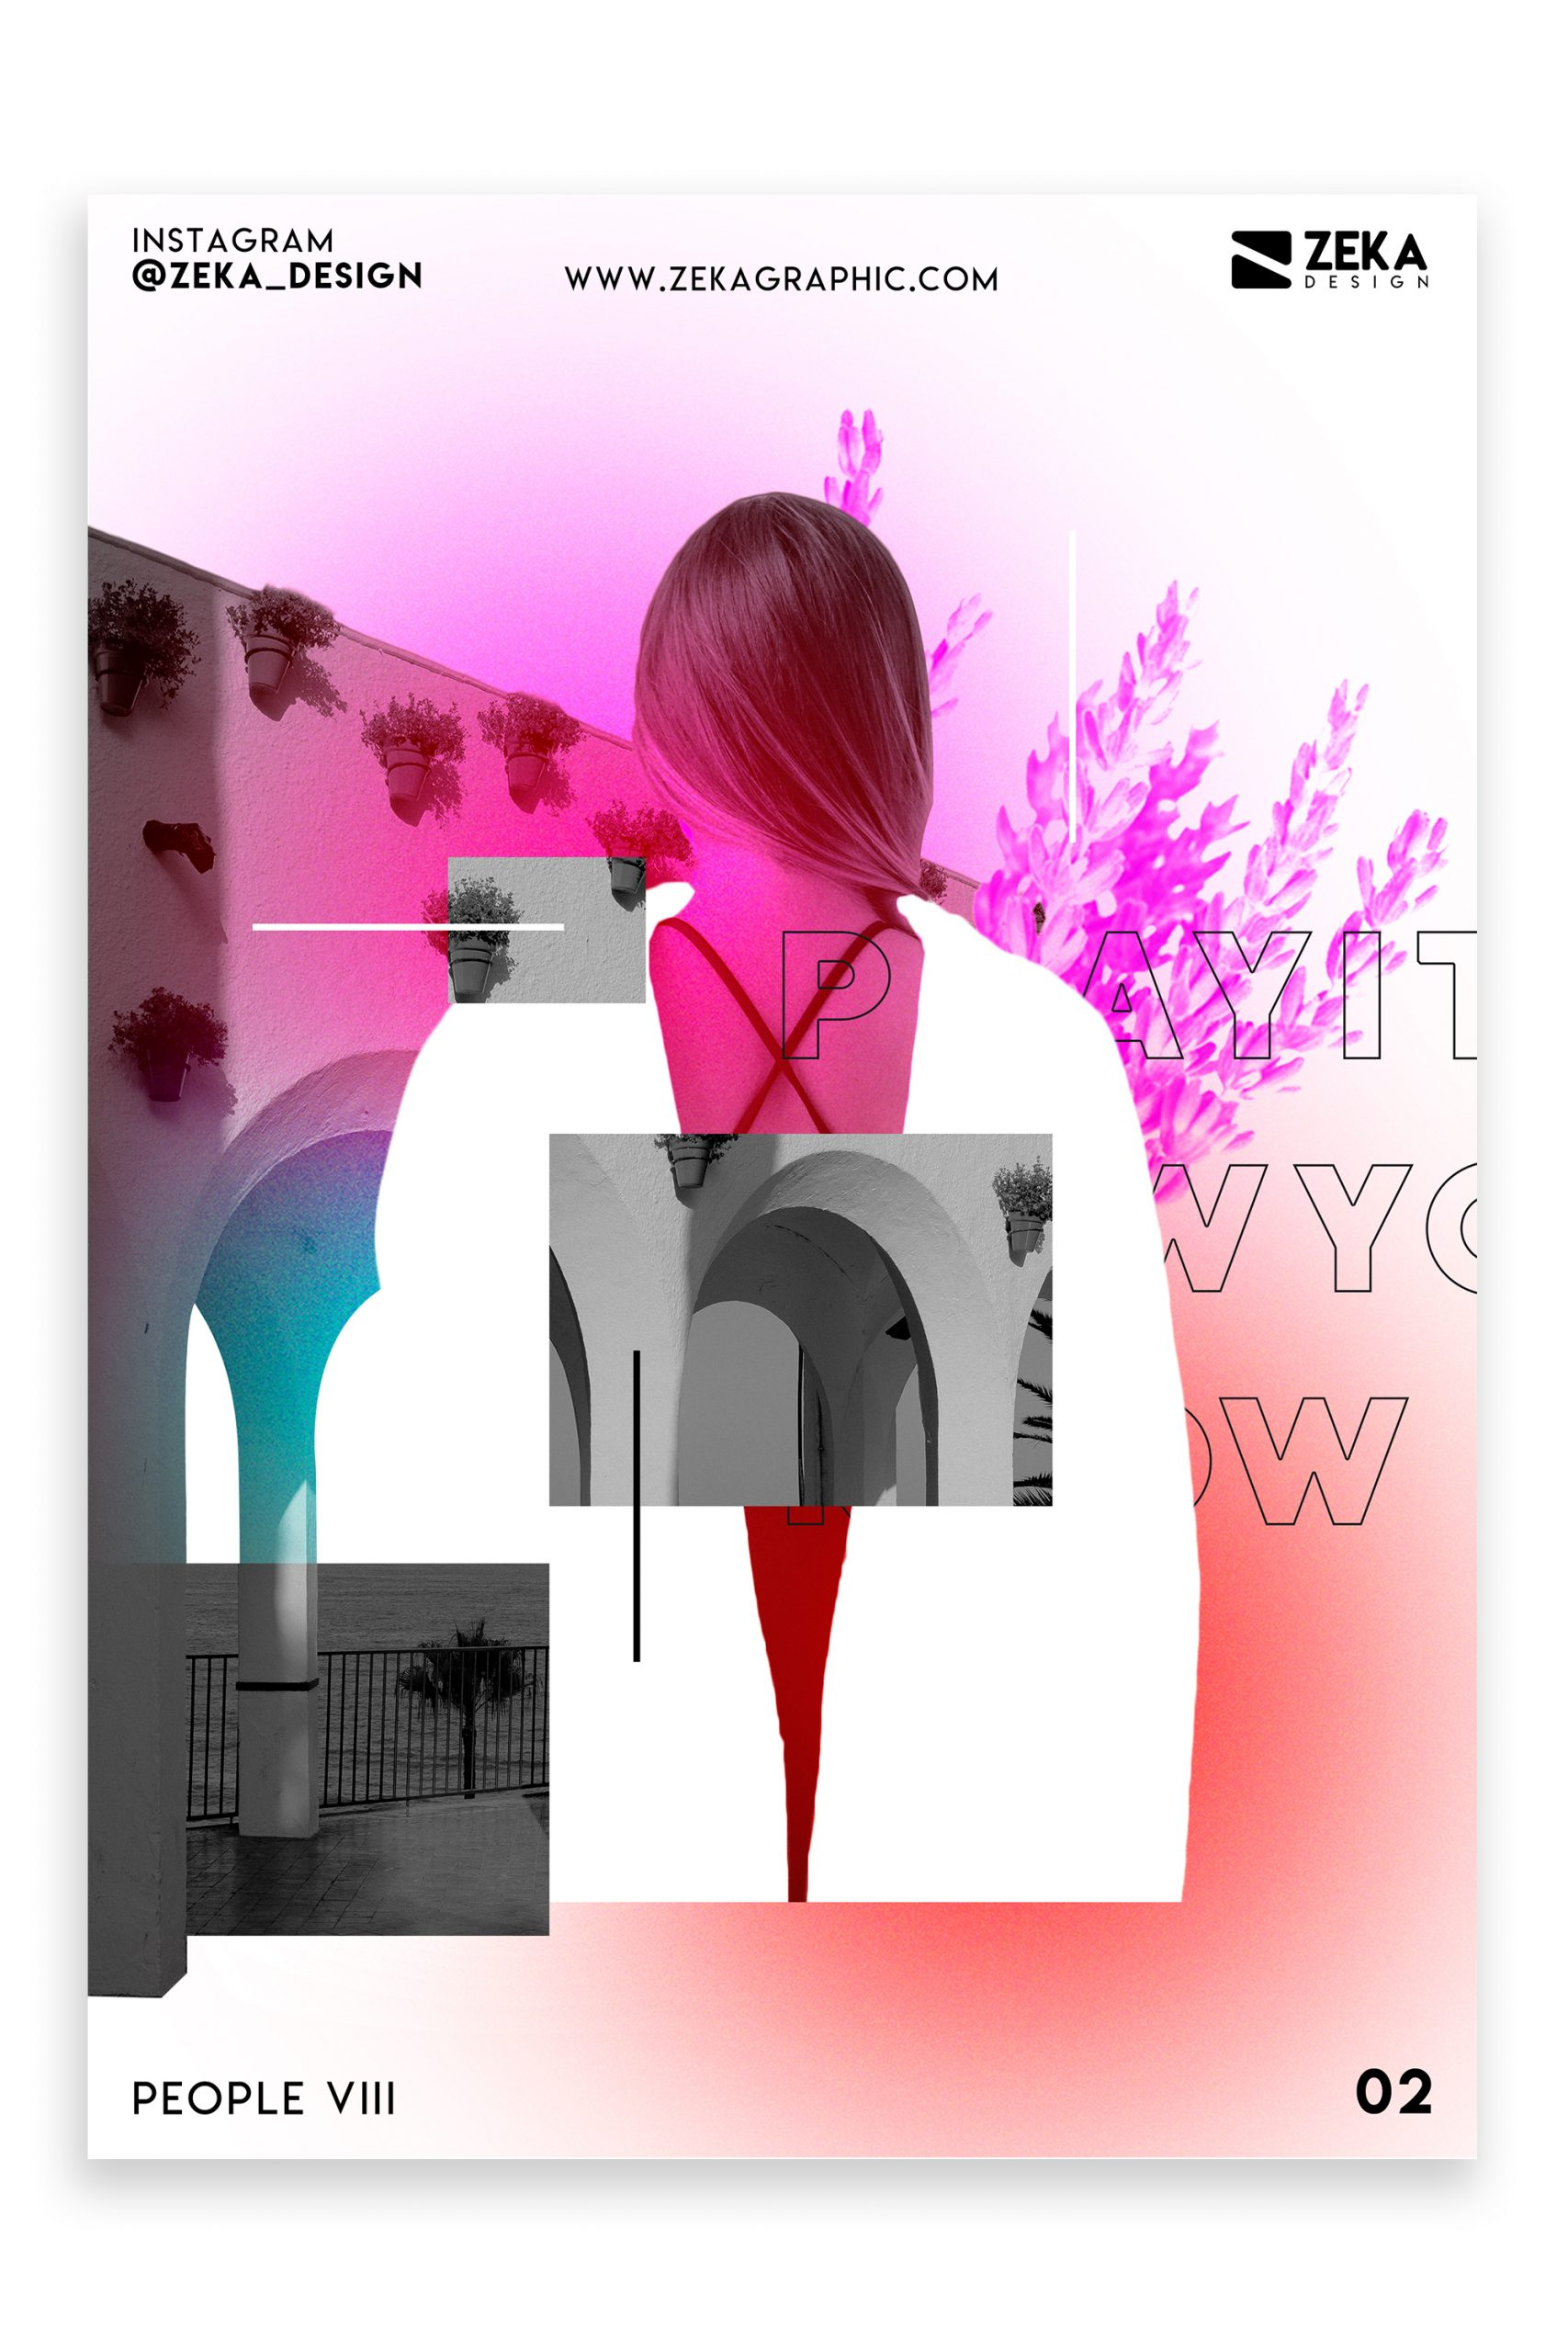 People VIII Poster Design Inspiration Zeka Design Graphic Design Portfolio 2